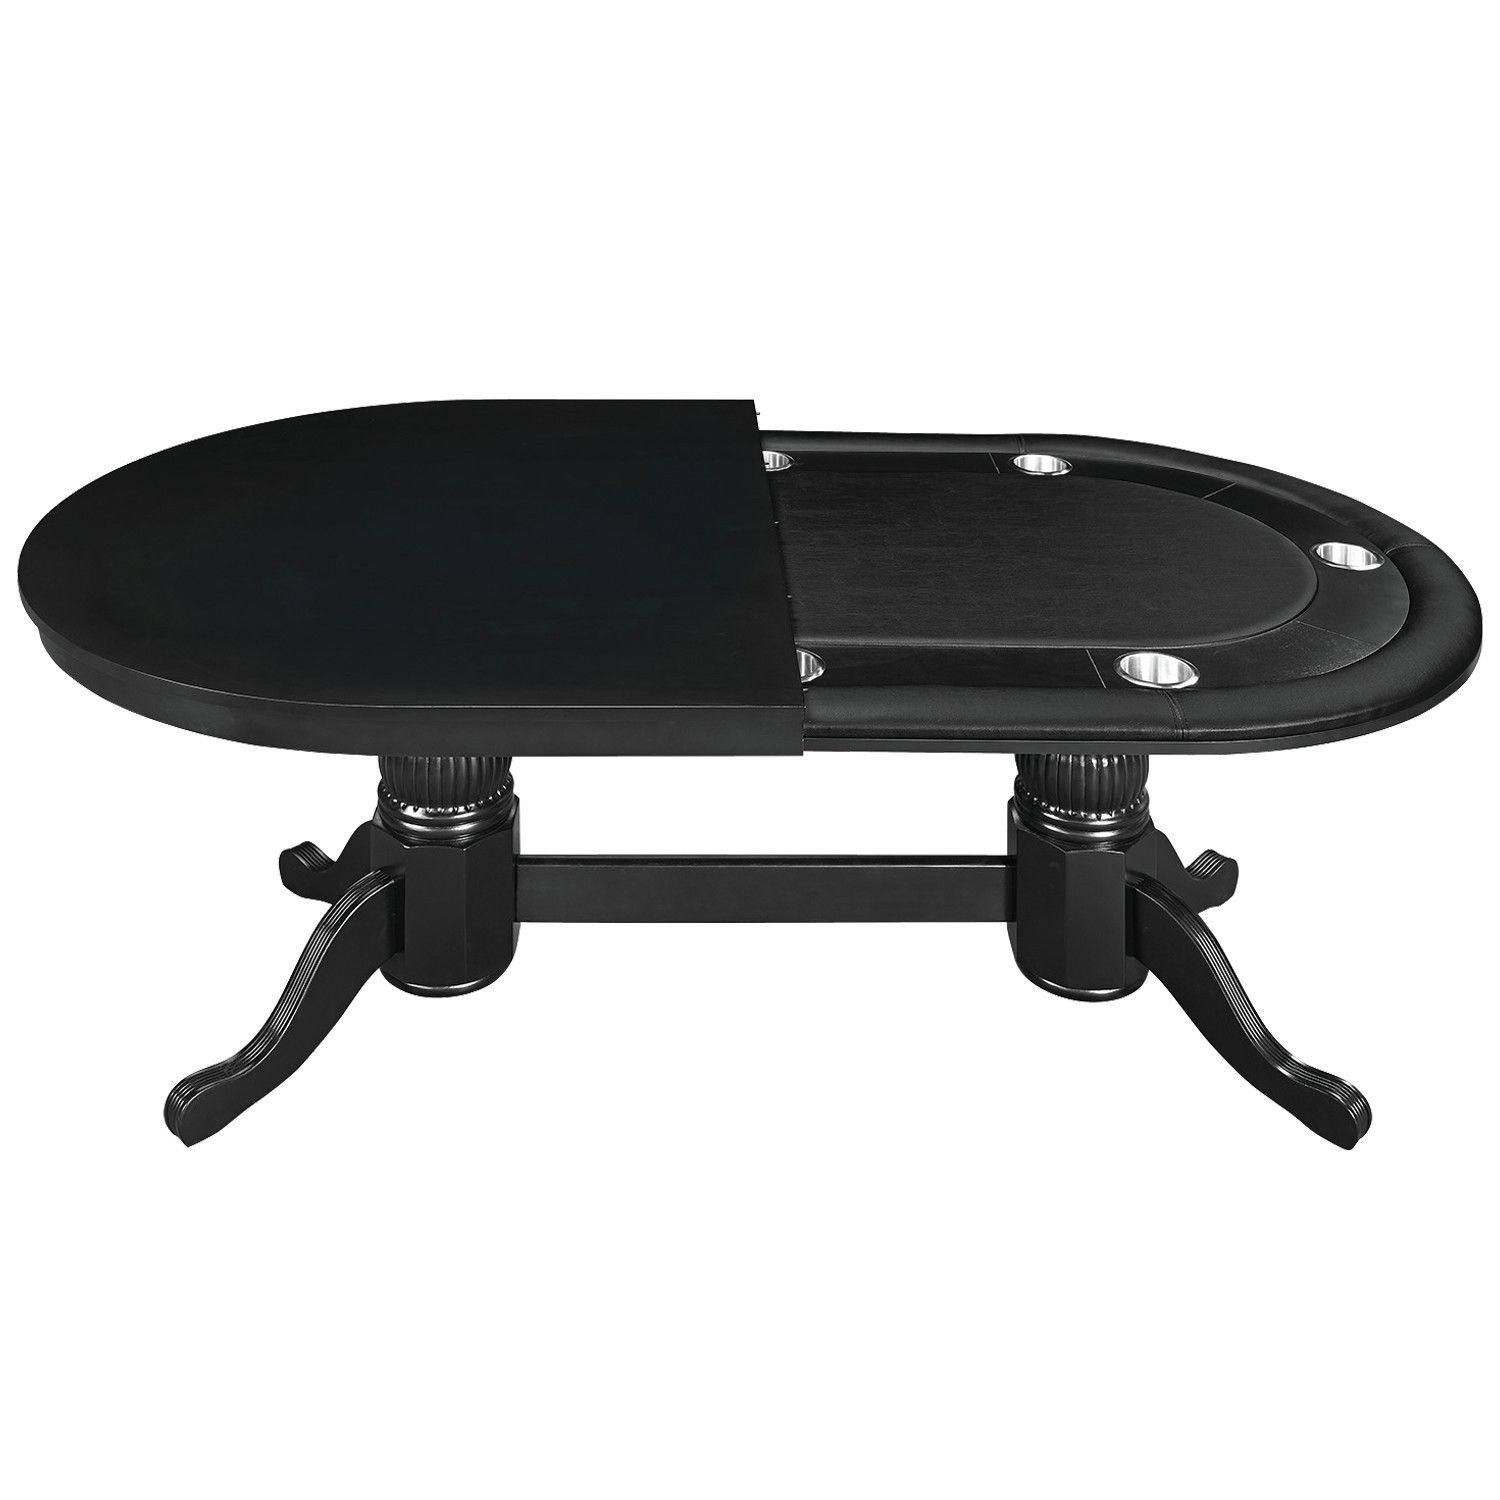 Convertible Poker Dining Table By Ram Game Room Poker Table